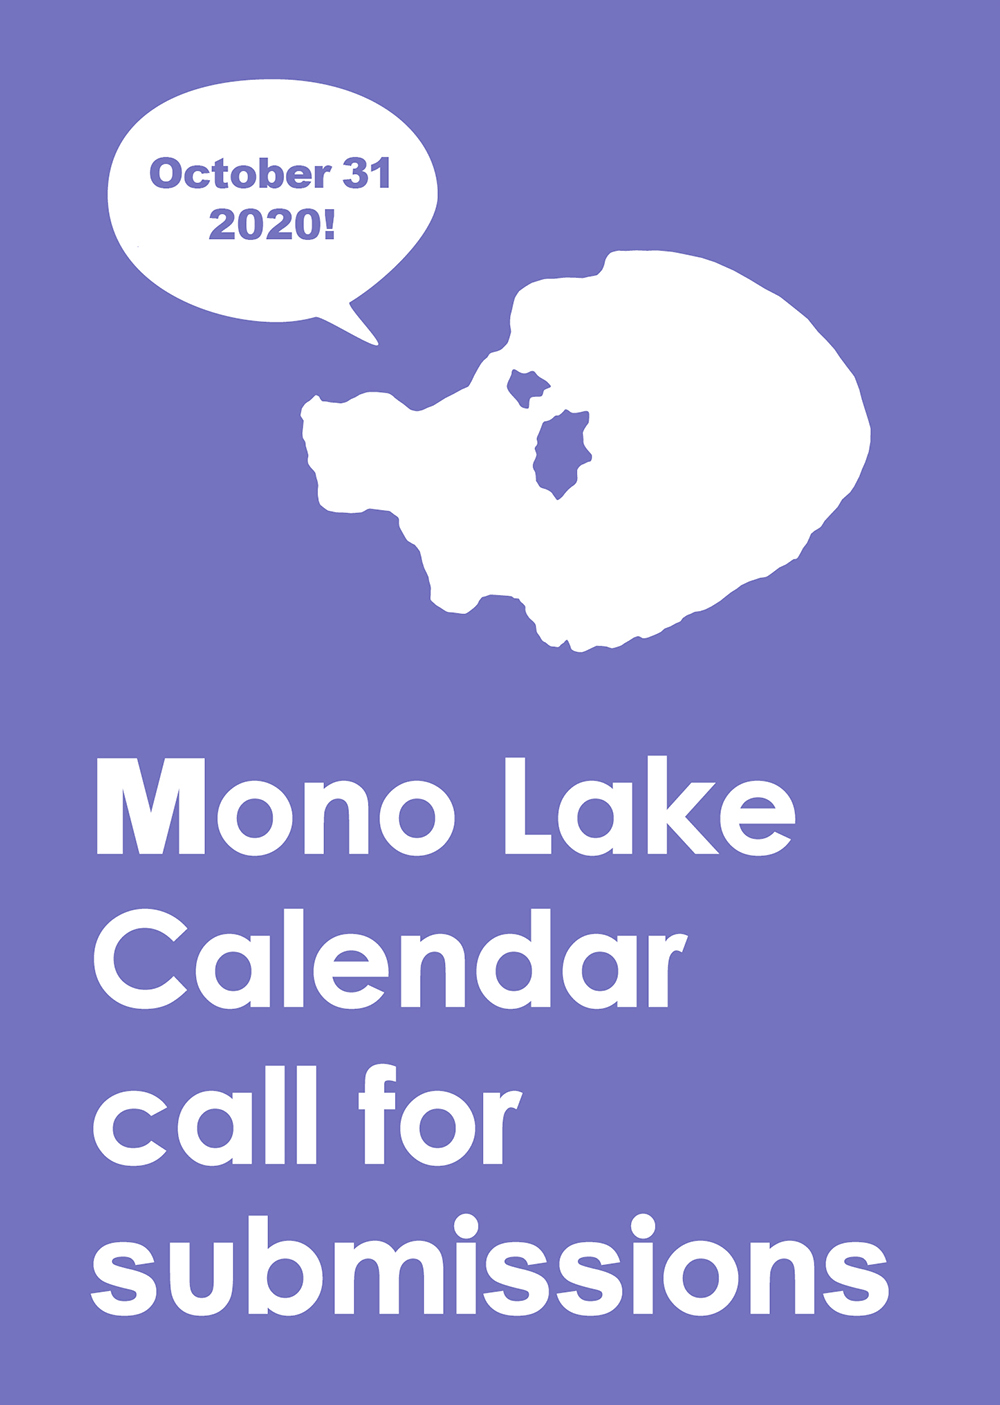 """A purple poster reads """"Mono Lake Calendar call for submissions"""" and has a white shape oh Mono Lake with a speech bubble saying """"October 31 2020!"""""""